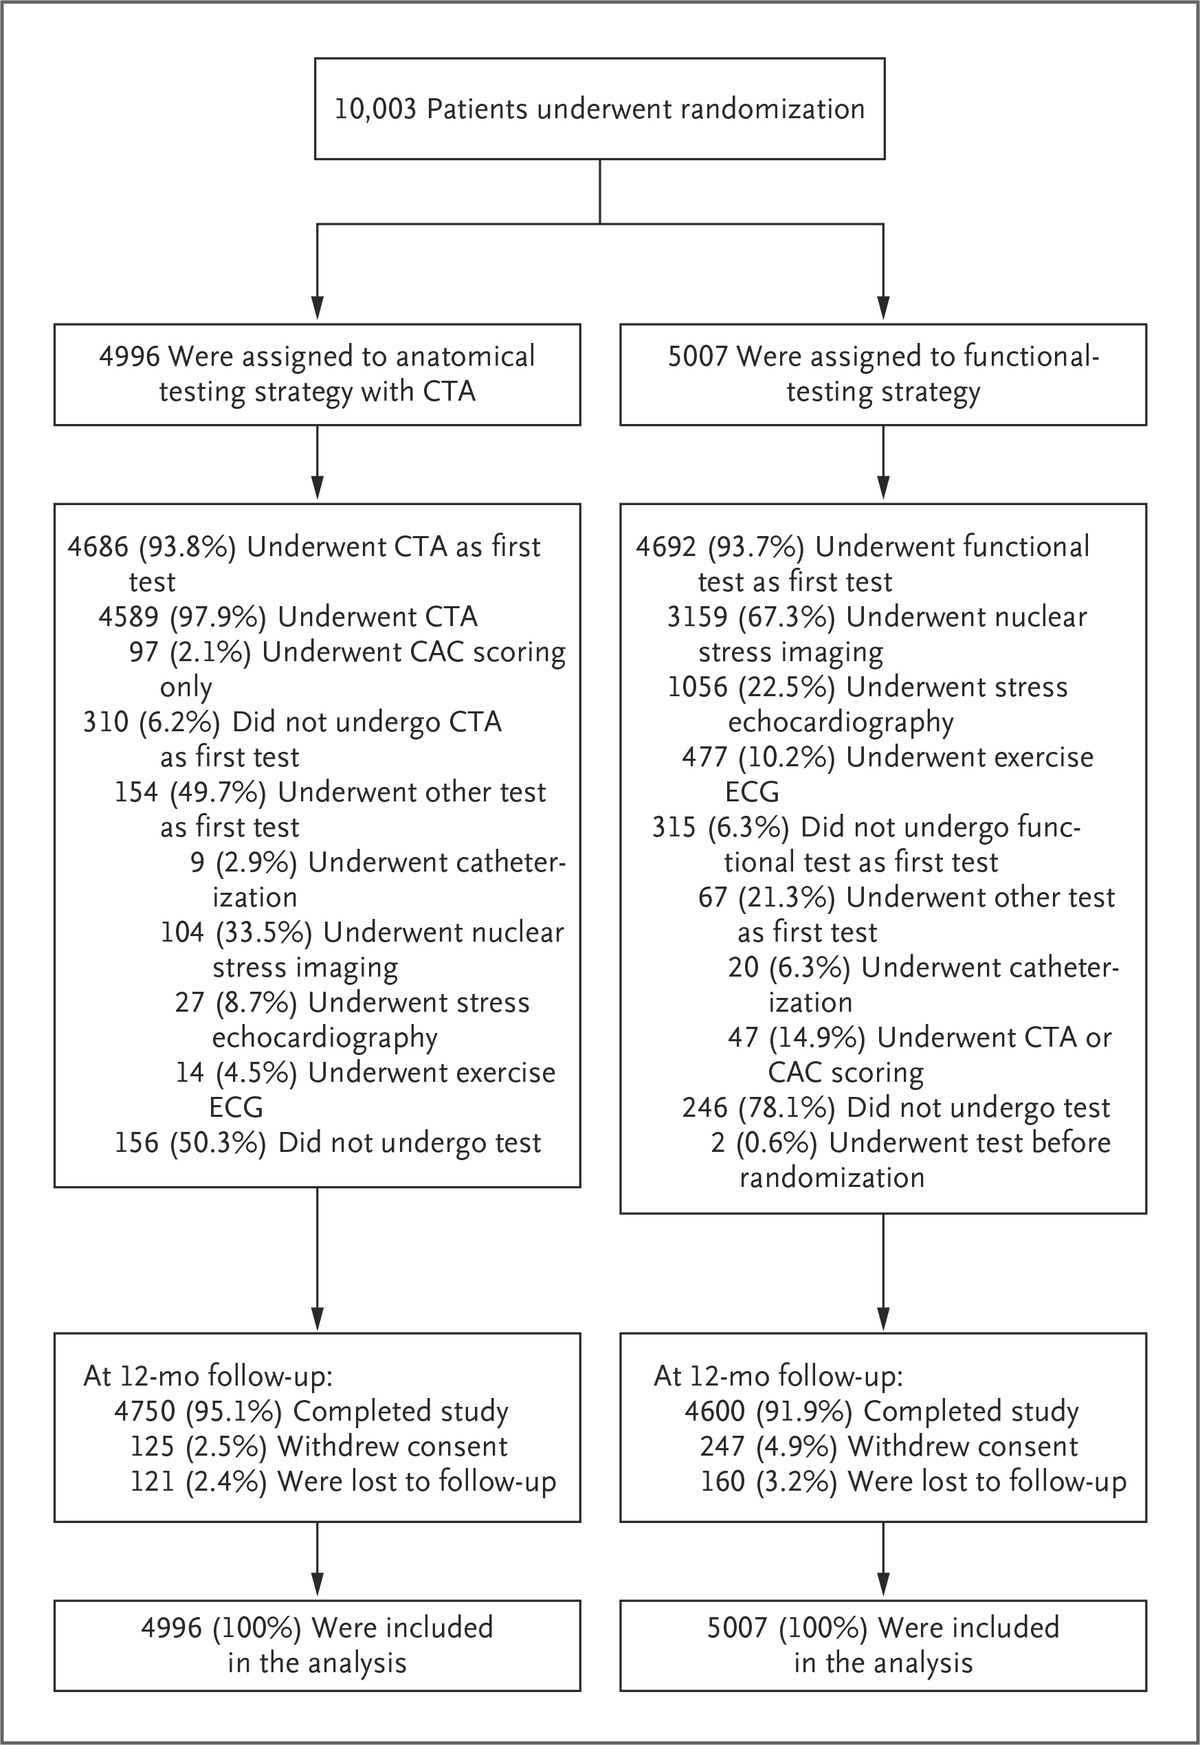 Outcomes Of Anatomical Versus Functional Testing For Coronary Artery